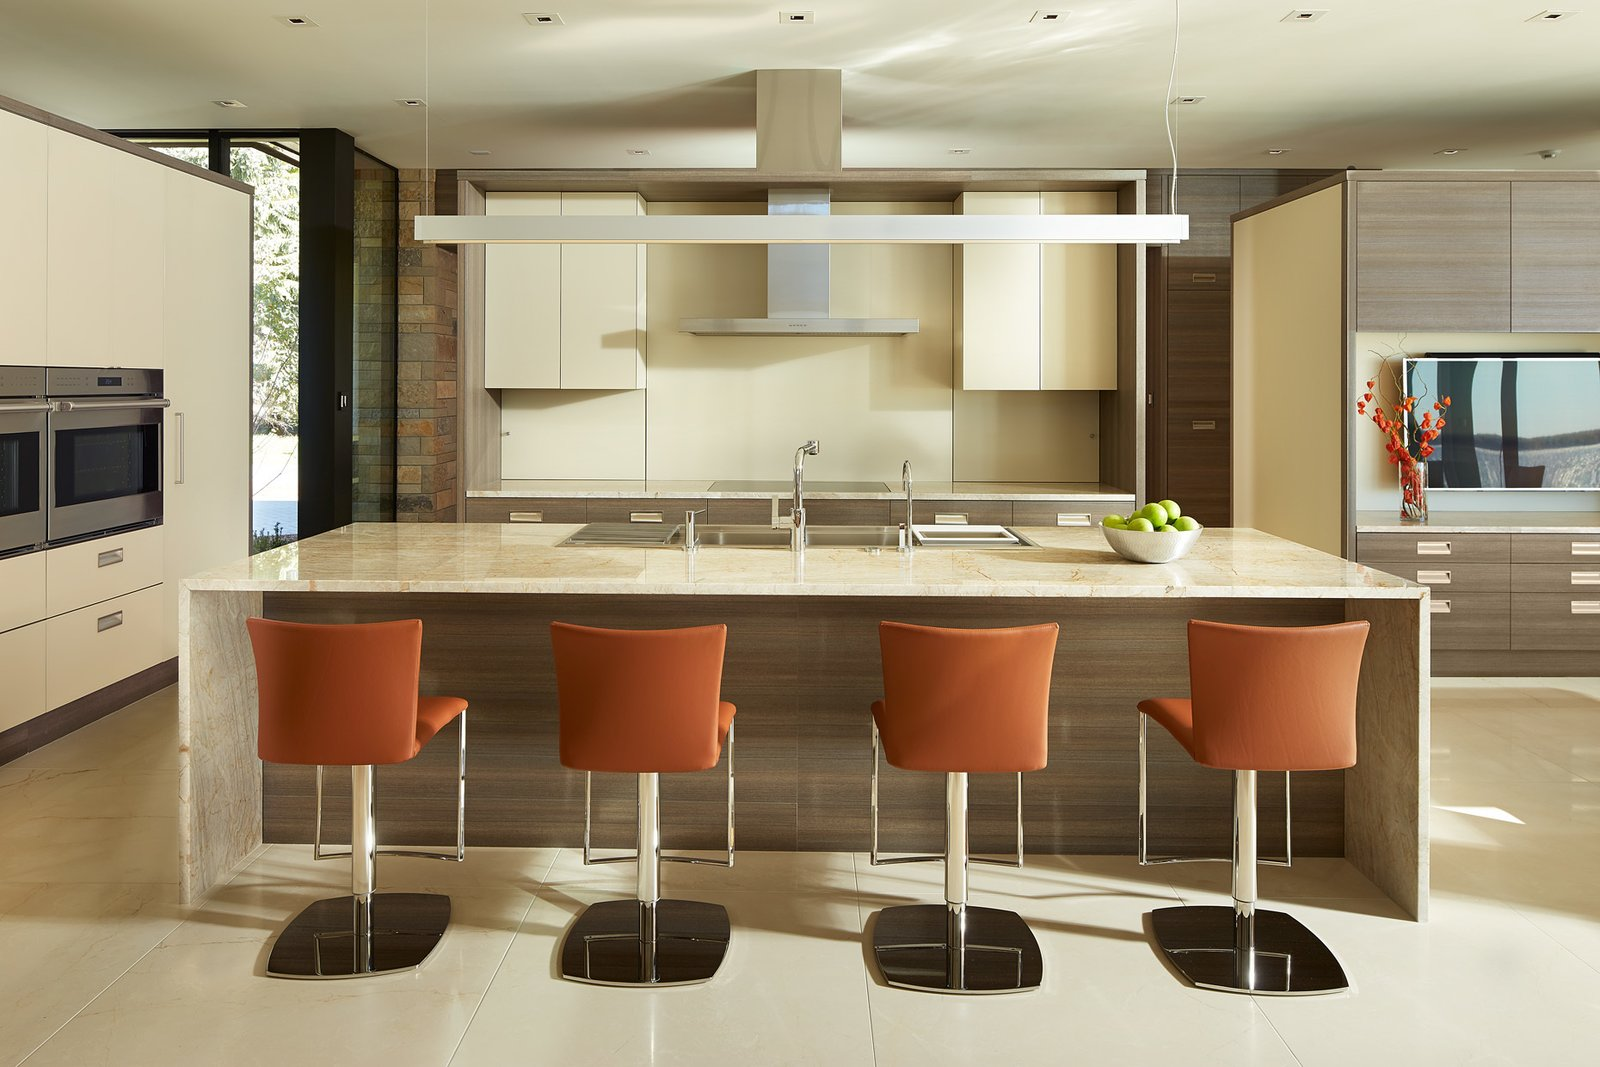 Kitchen, Wall Oven, Marble Counter, Wood Cabinet, Cooktops, White Cabinet, Drop In Sink, and Range Hood  Shoreline Residence by PKA Architecture